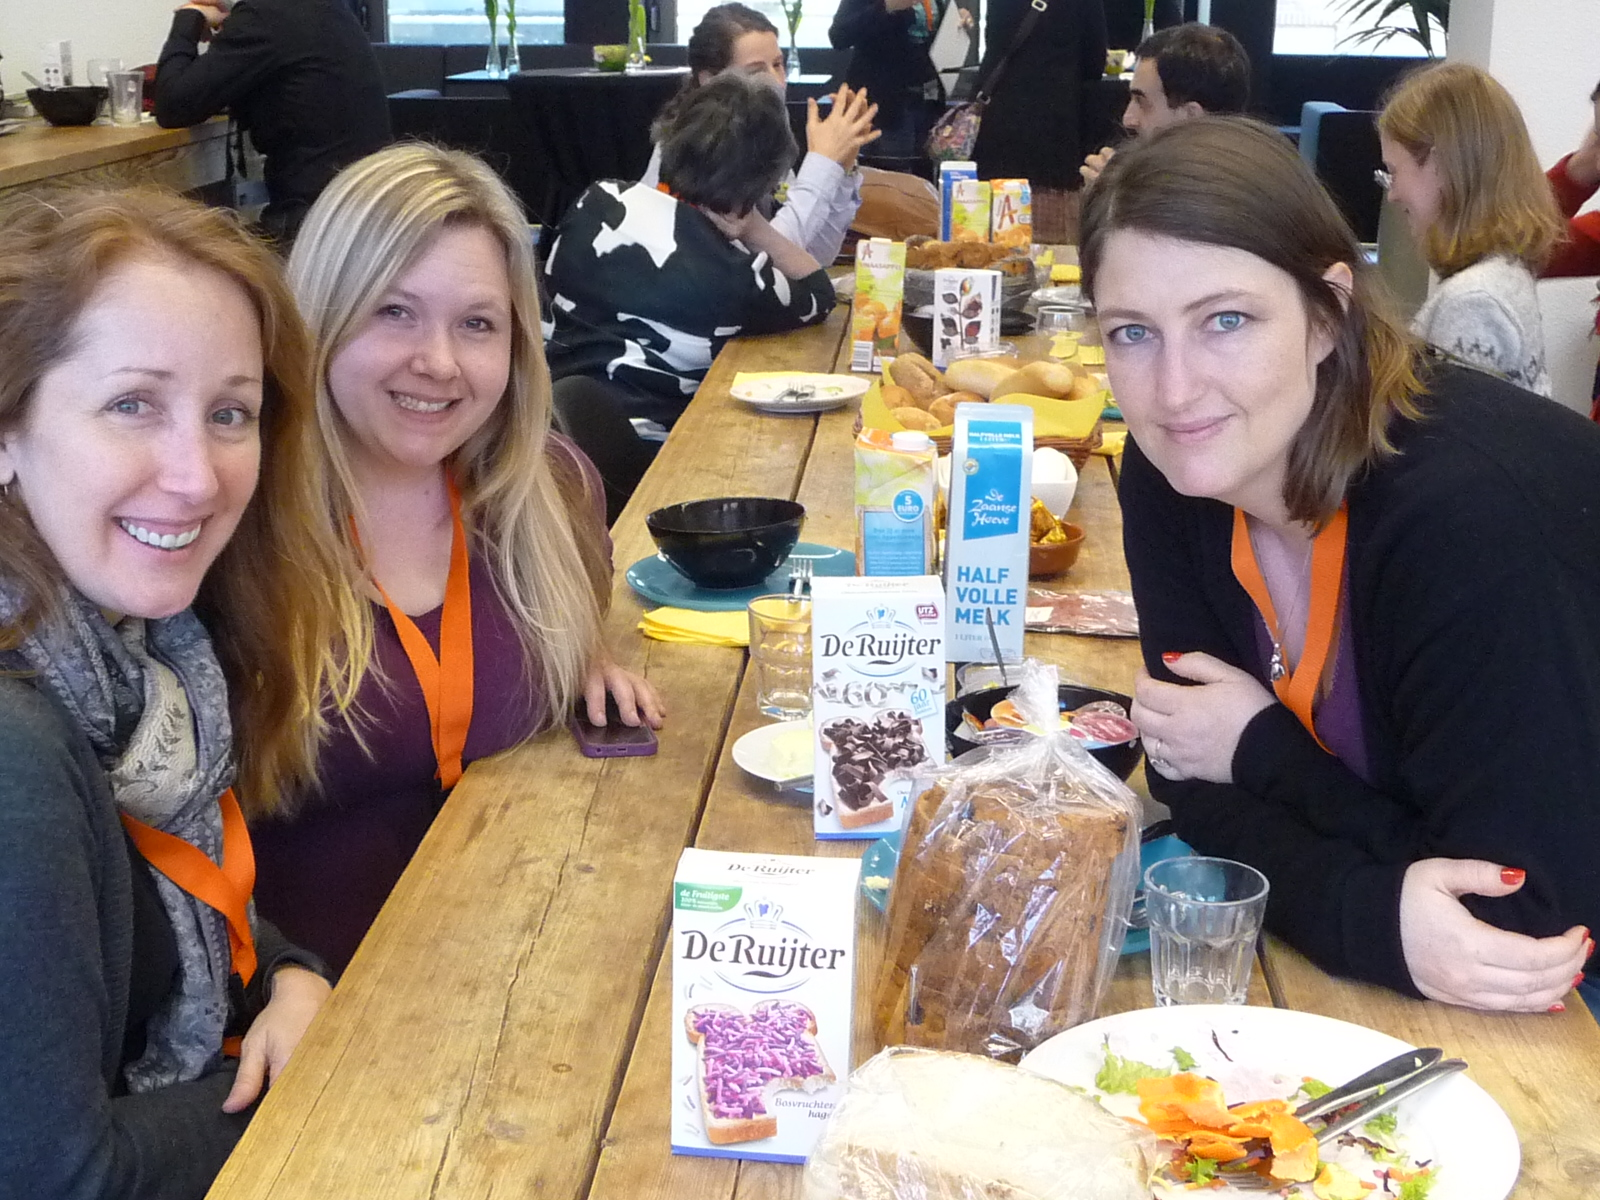 SCBWI France Board Member Elizabeth Brahy (on right) with SCBWI EU members taking a lunch break during the Europolitan 2015 conference in Amsterdam.